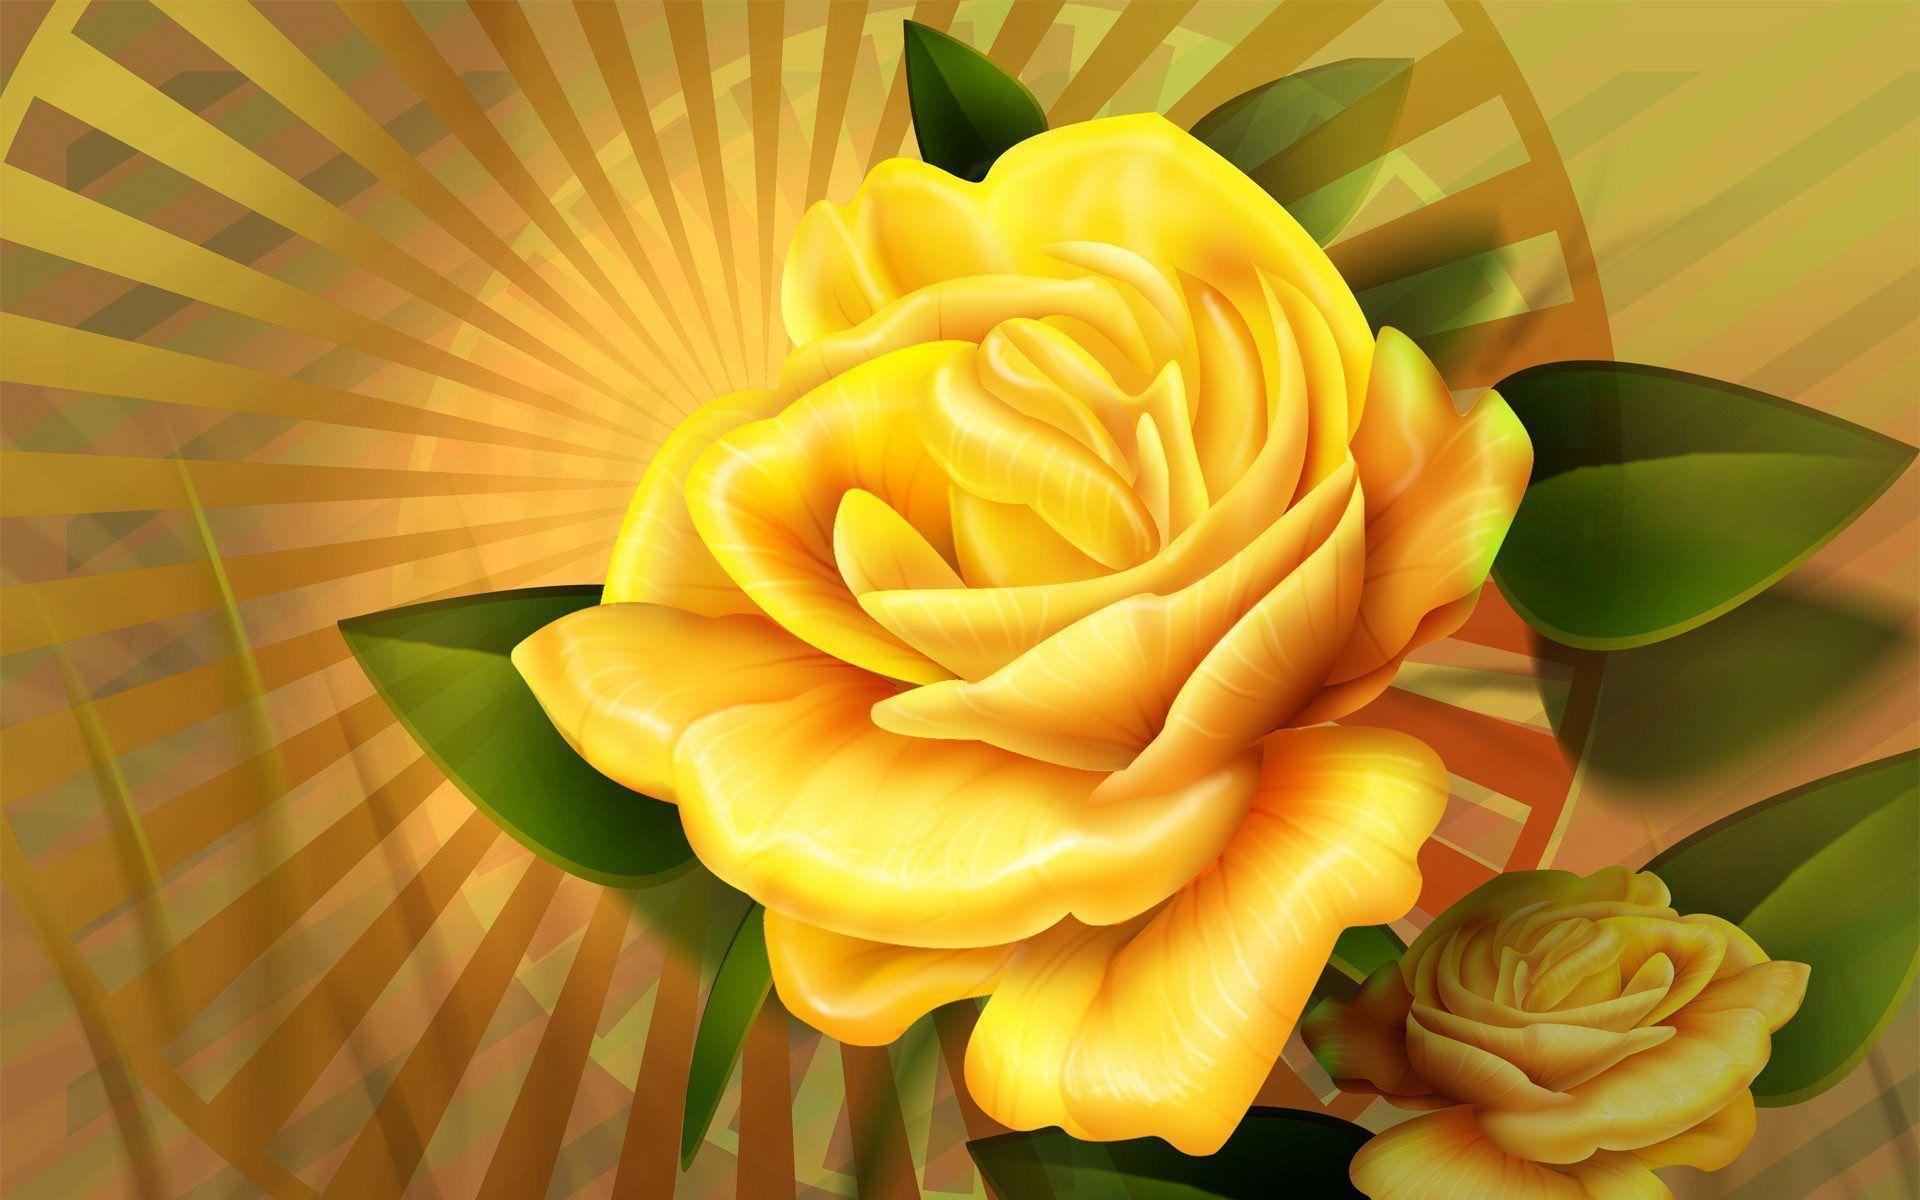 Yellow rose flower wallpapers wallpaper cave yellow rose flowers wallpapers hd cool 7 hd wallpapers mightylinksfo